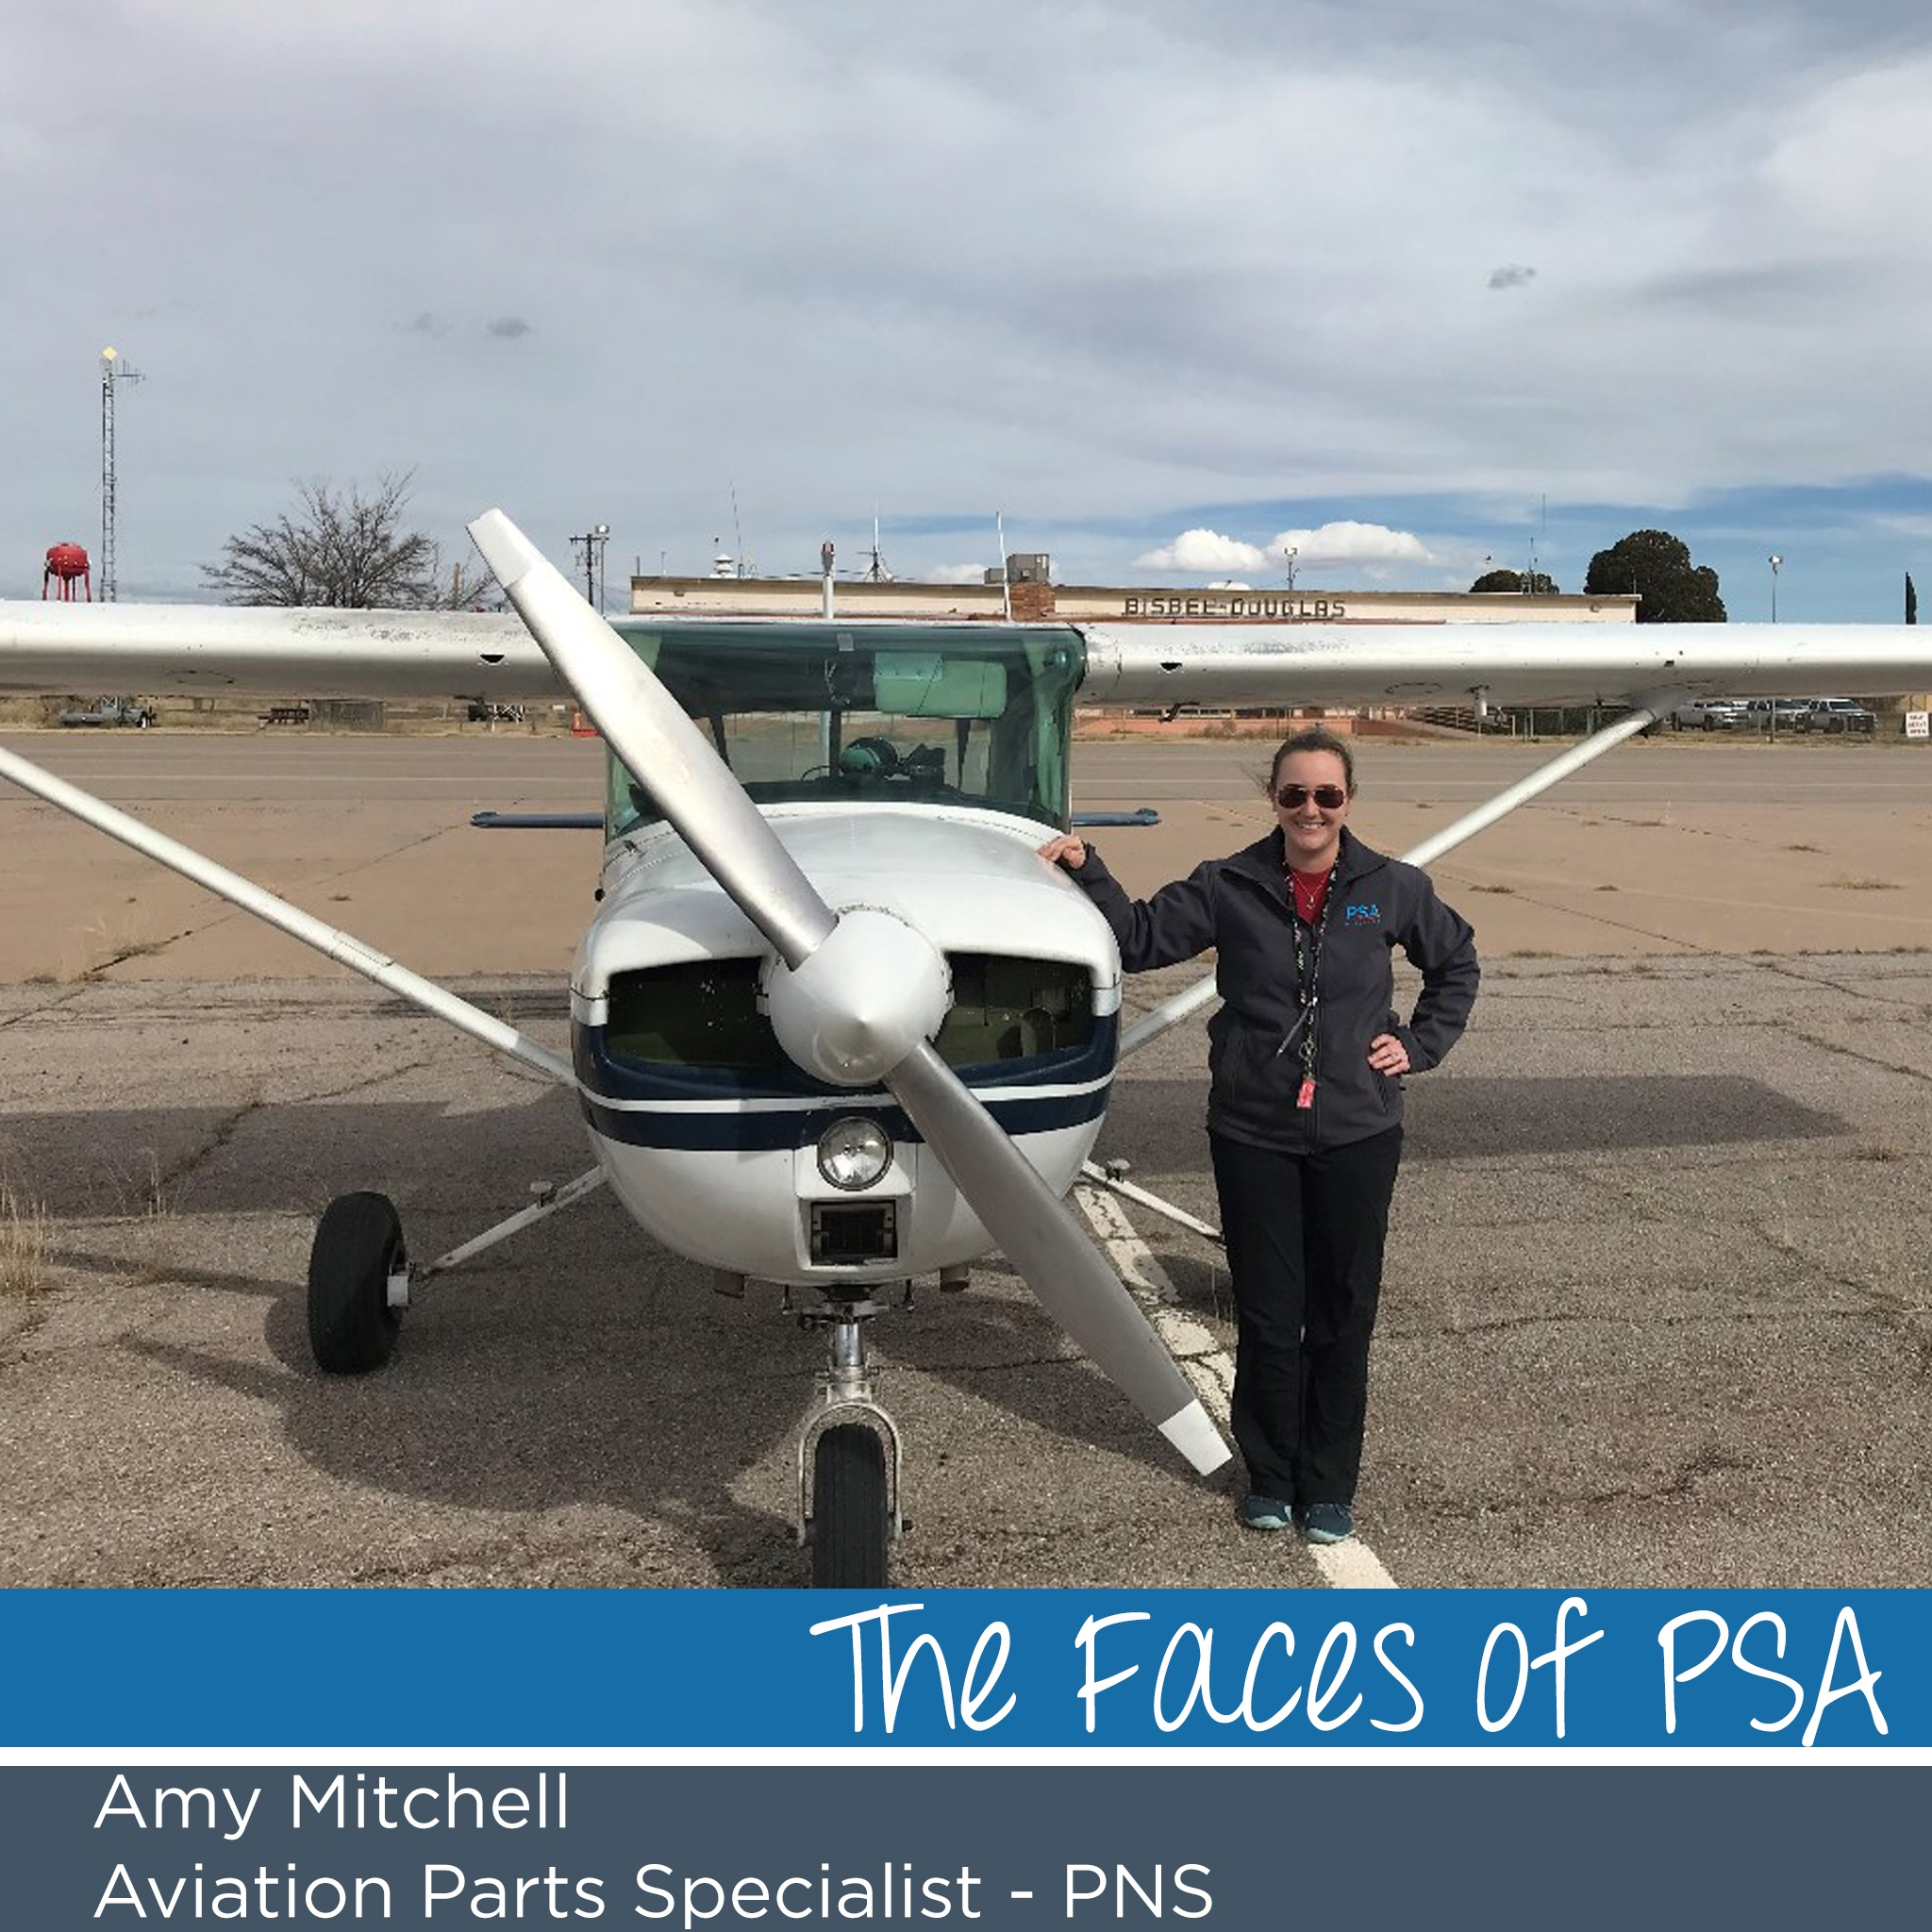 Amy Mitchell in Pursuit of Her Dreams to Become a Pilot